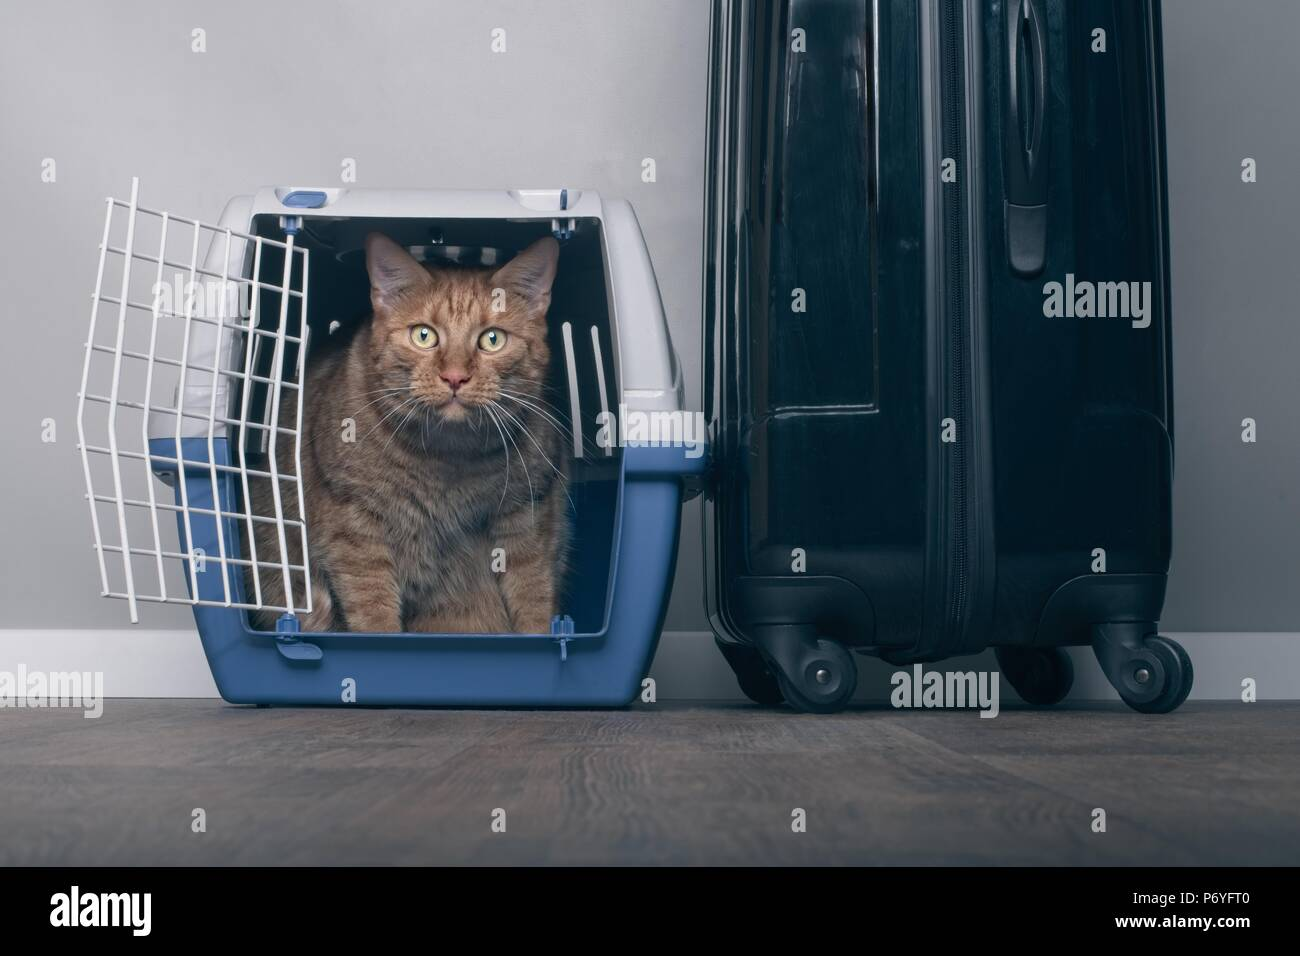 Traveling with a cat - Ginger cat in a pet carrier next to a suitcase. - Stock Image